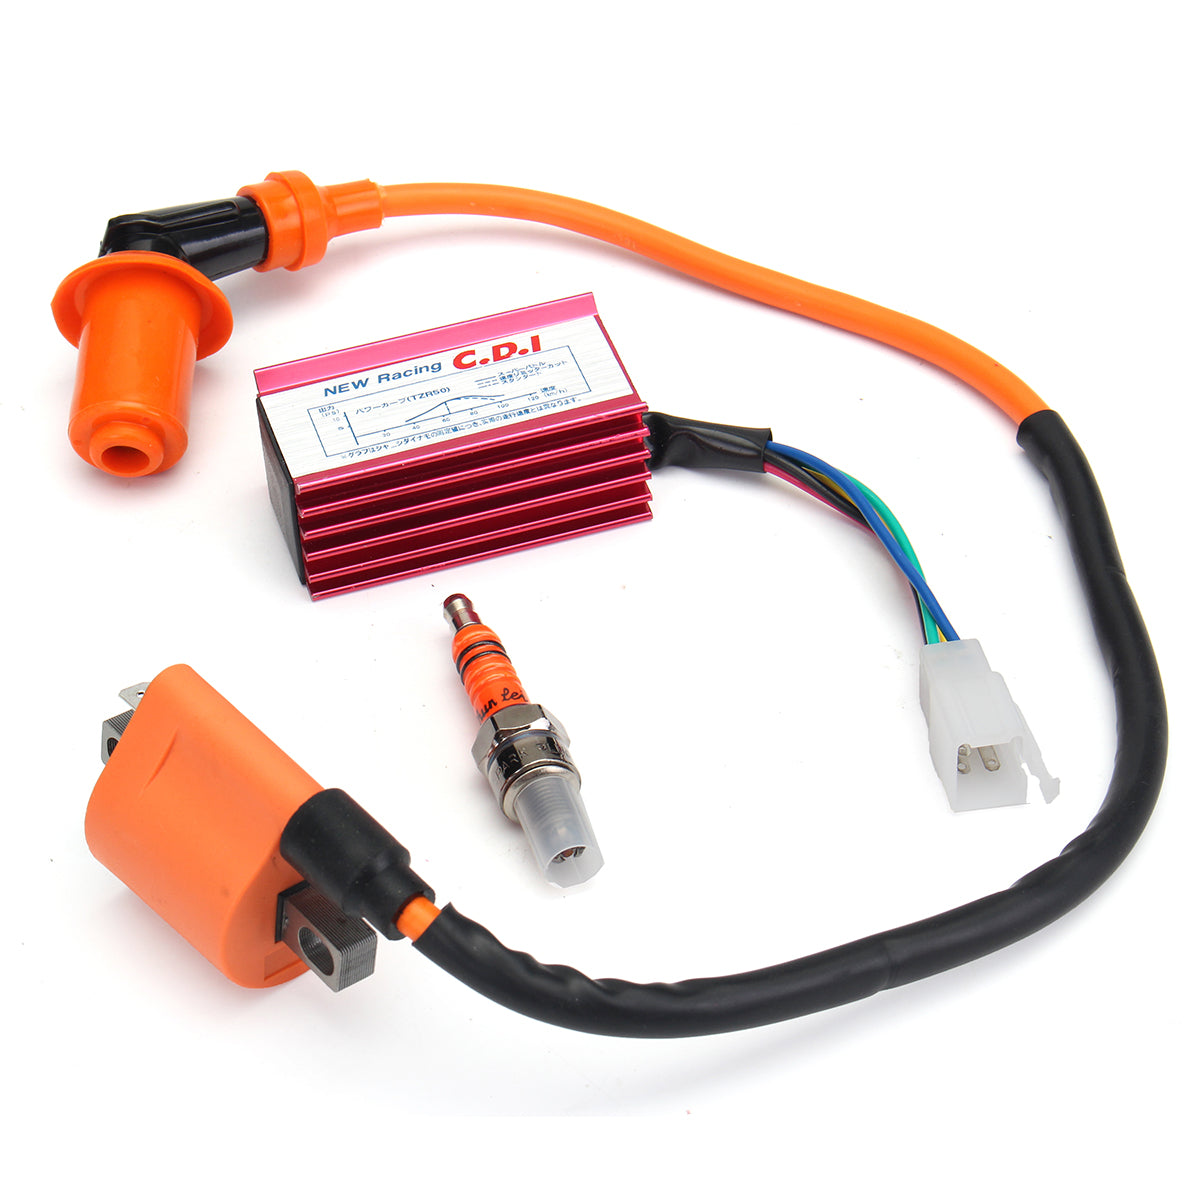 Cdi 25km Kymco Peugeot Sym 50cc 4 Takt Dc New 50 70 90 110cc 125cc Wire Harness Wiring Racing Ignition Coil Coolster 3050 3125 Taotao Ata 110 125